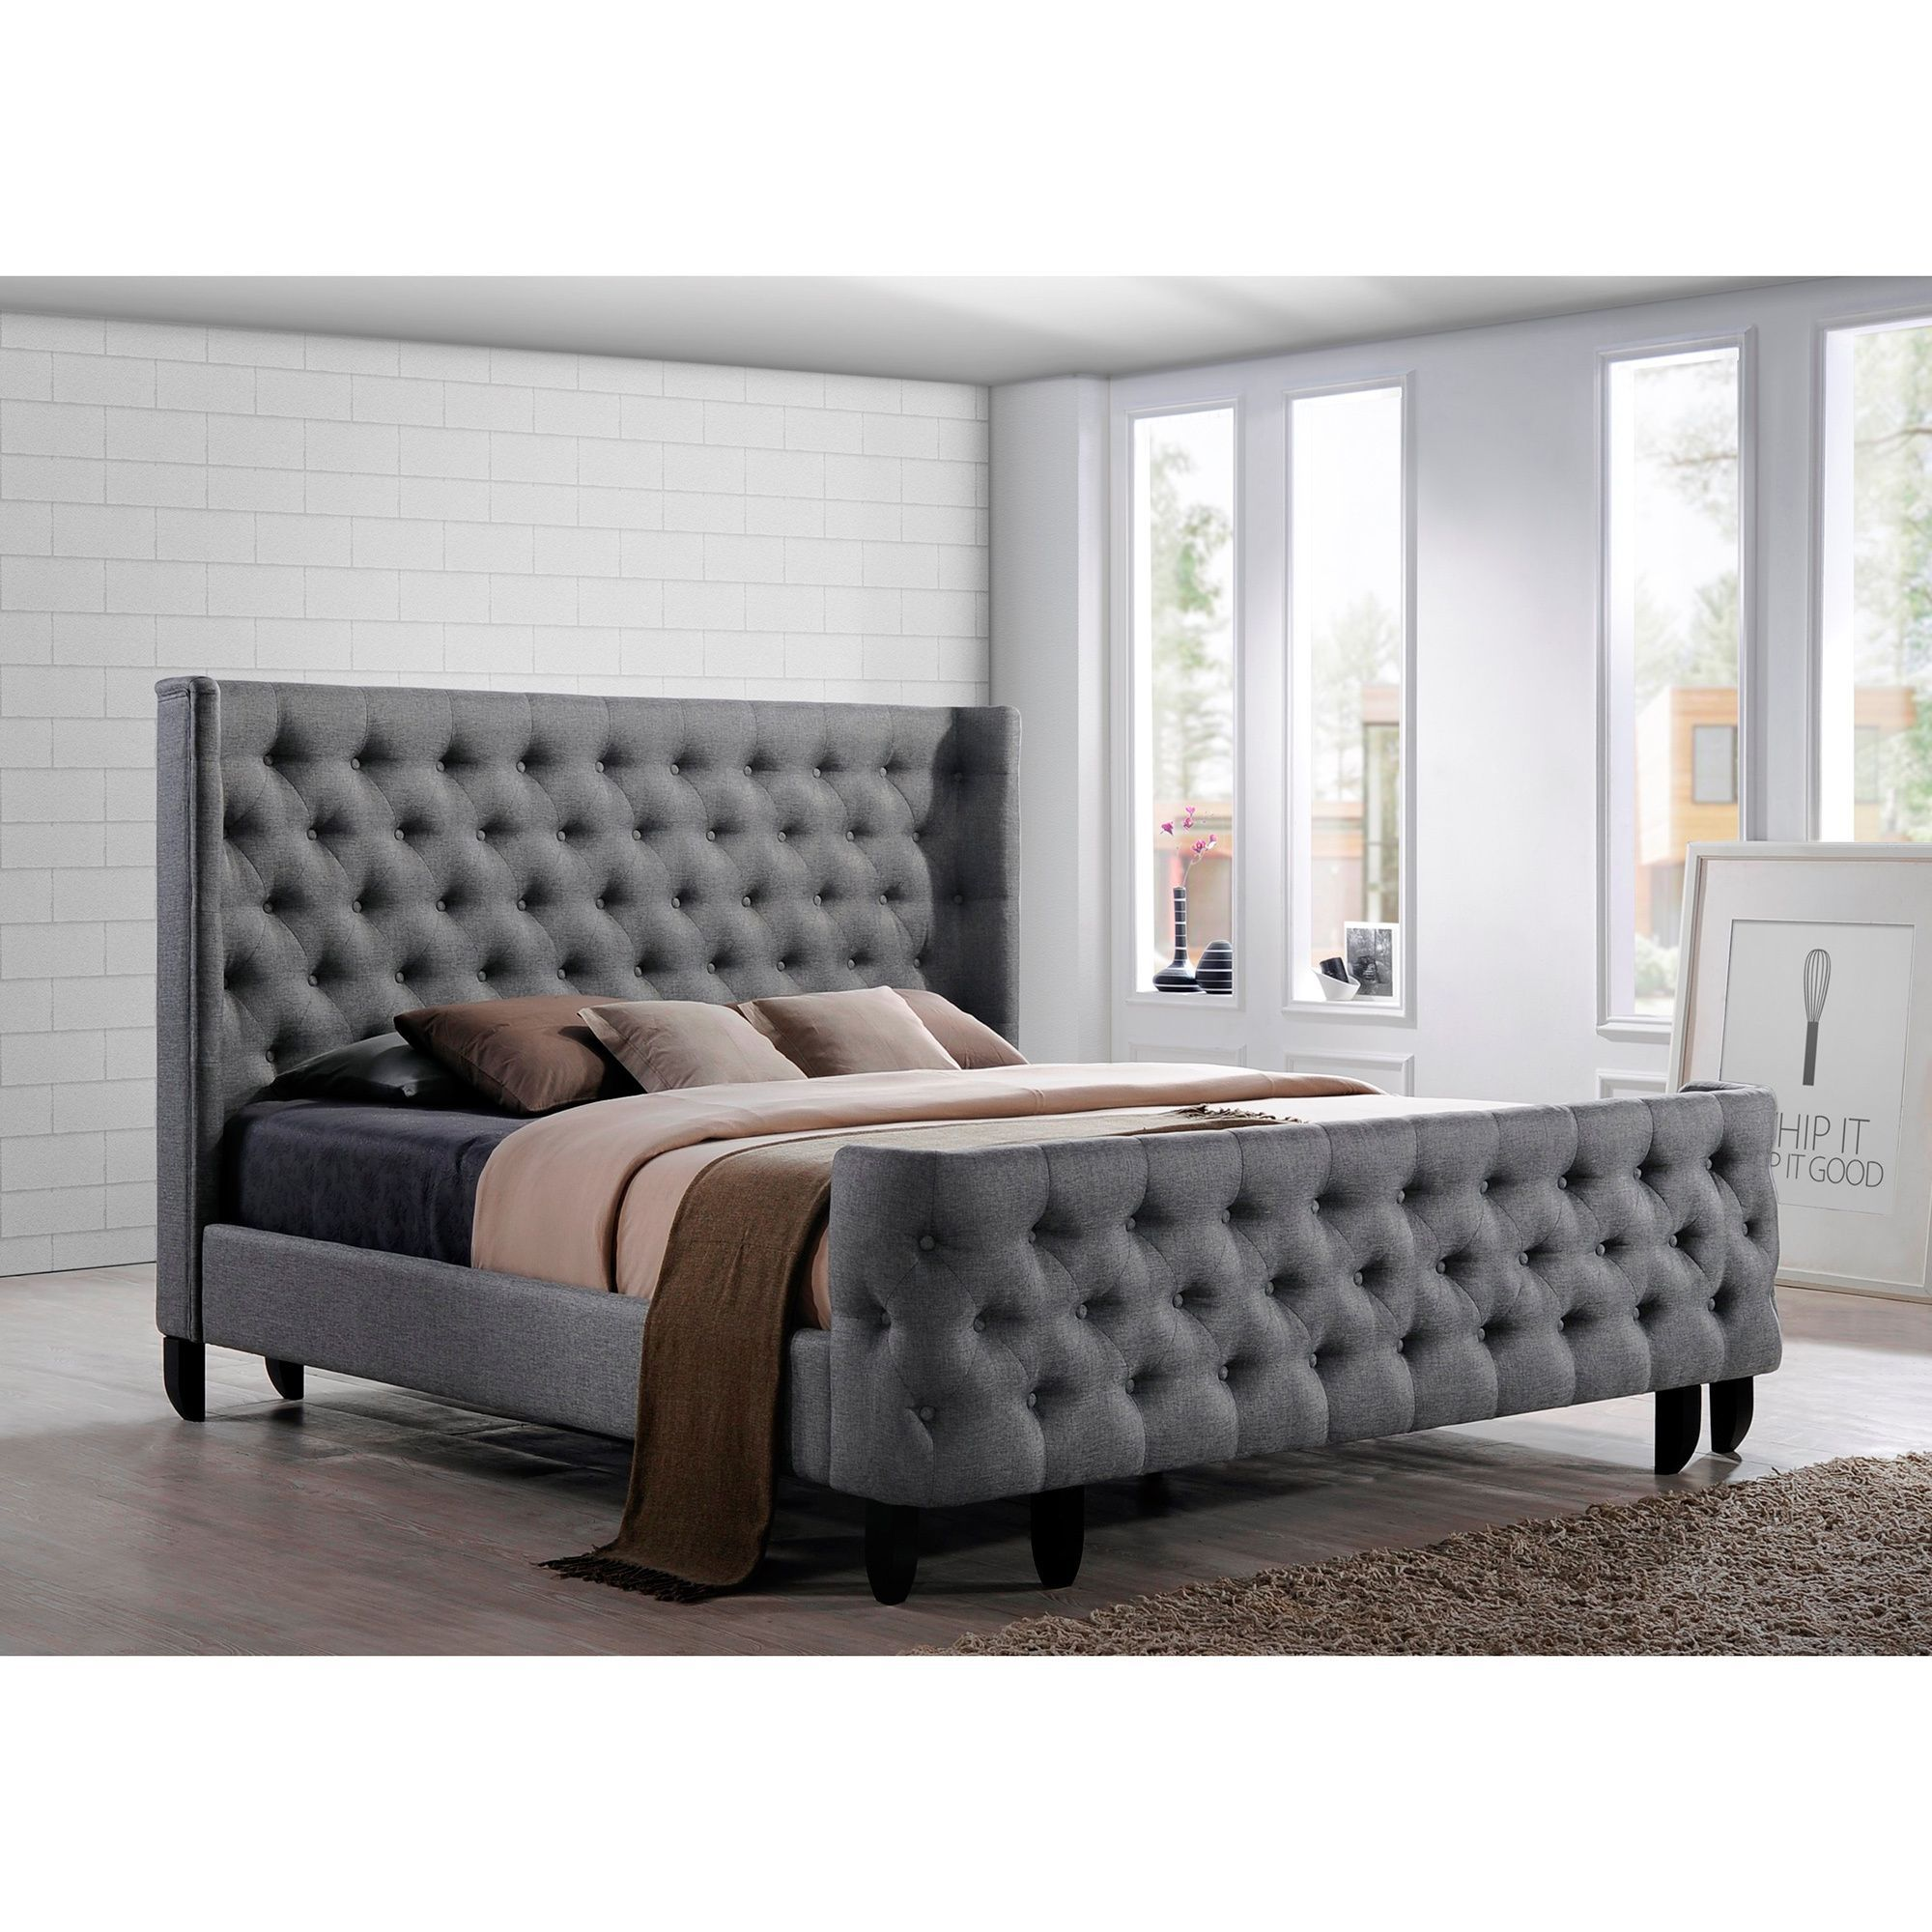 DREAM BED A buttontufted, winged headboard and footboard